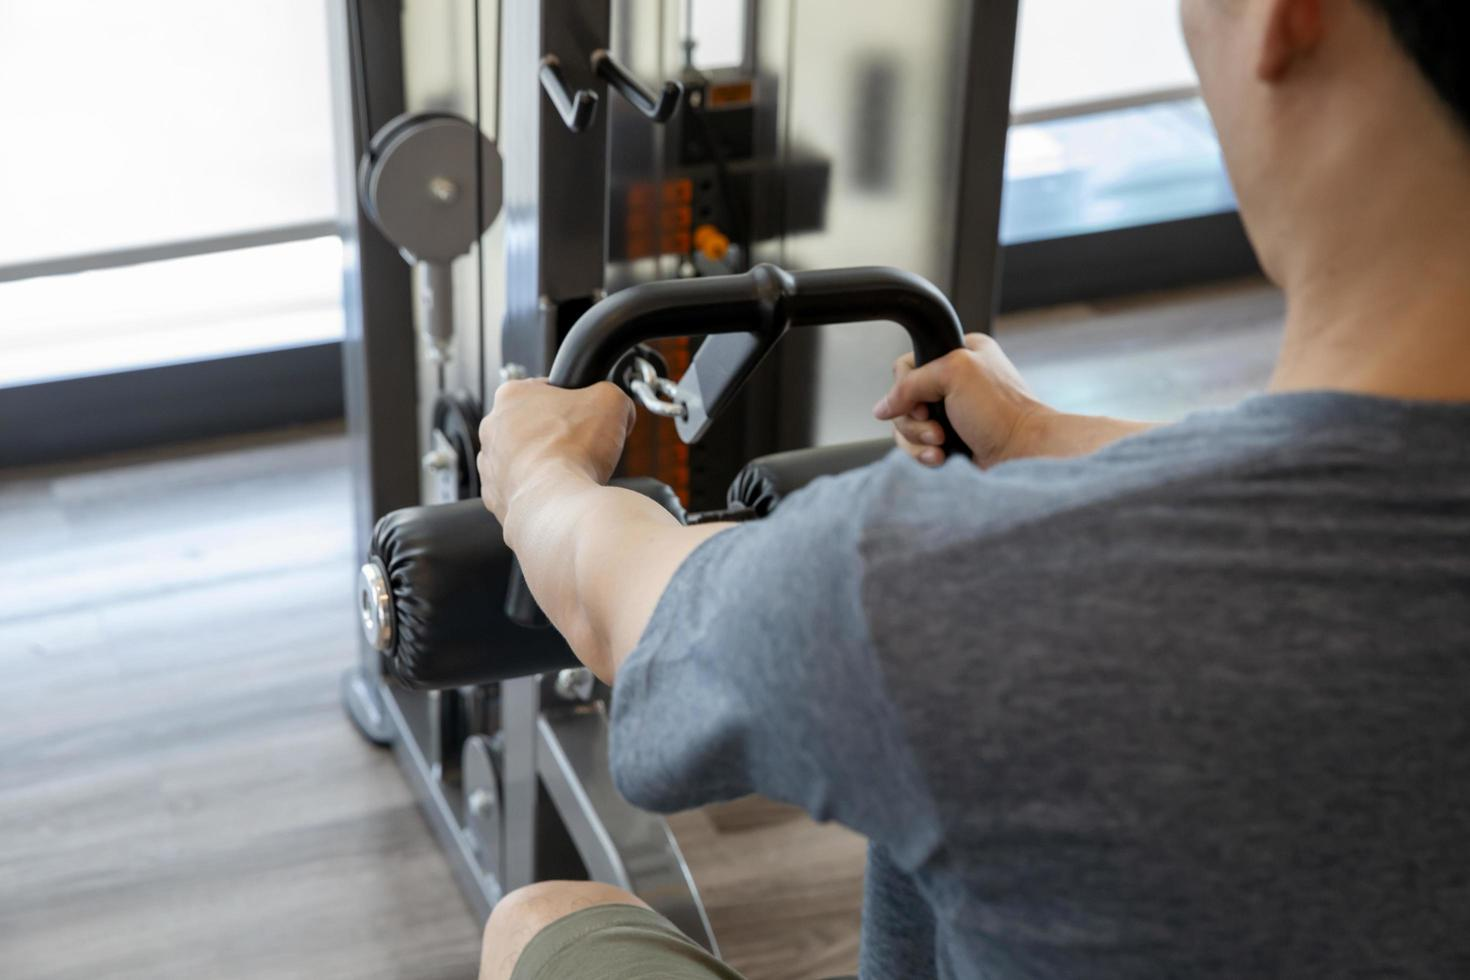 Young man beginner exercising with dumbbells flexing muscles at a gym, sports training concept photo